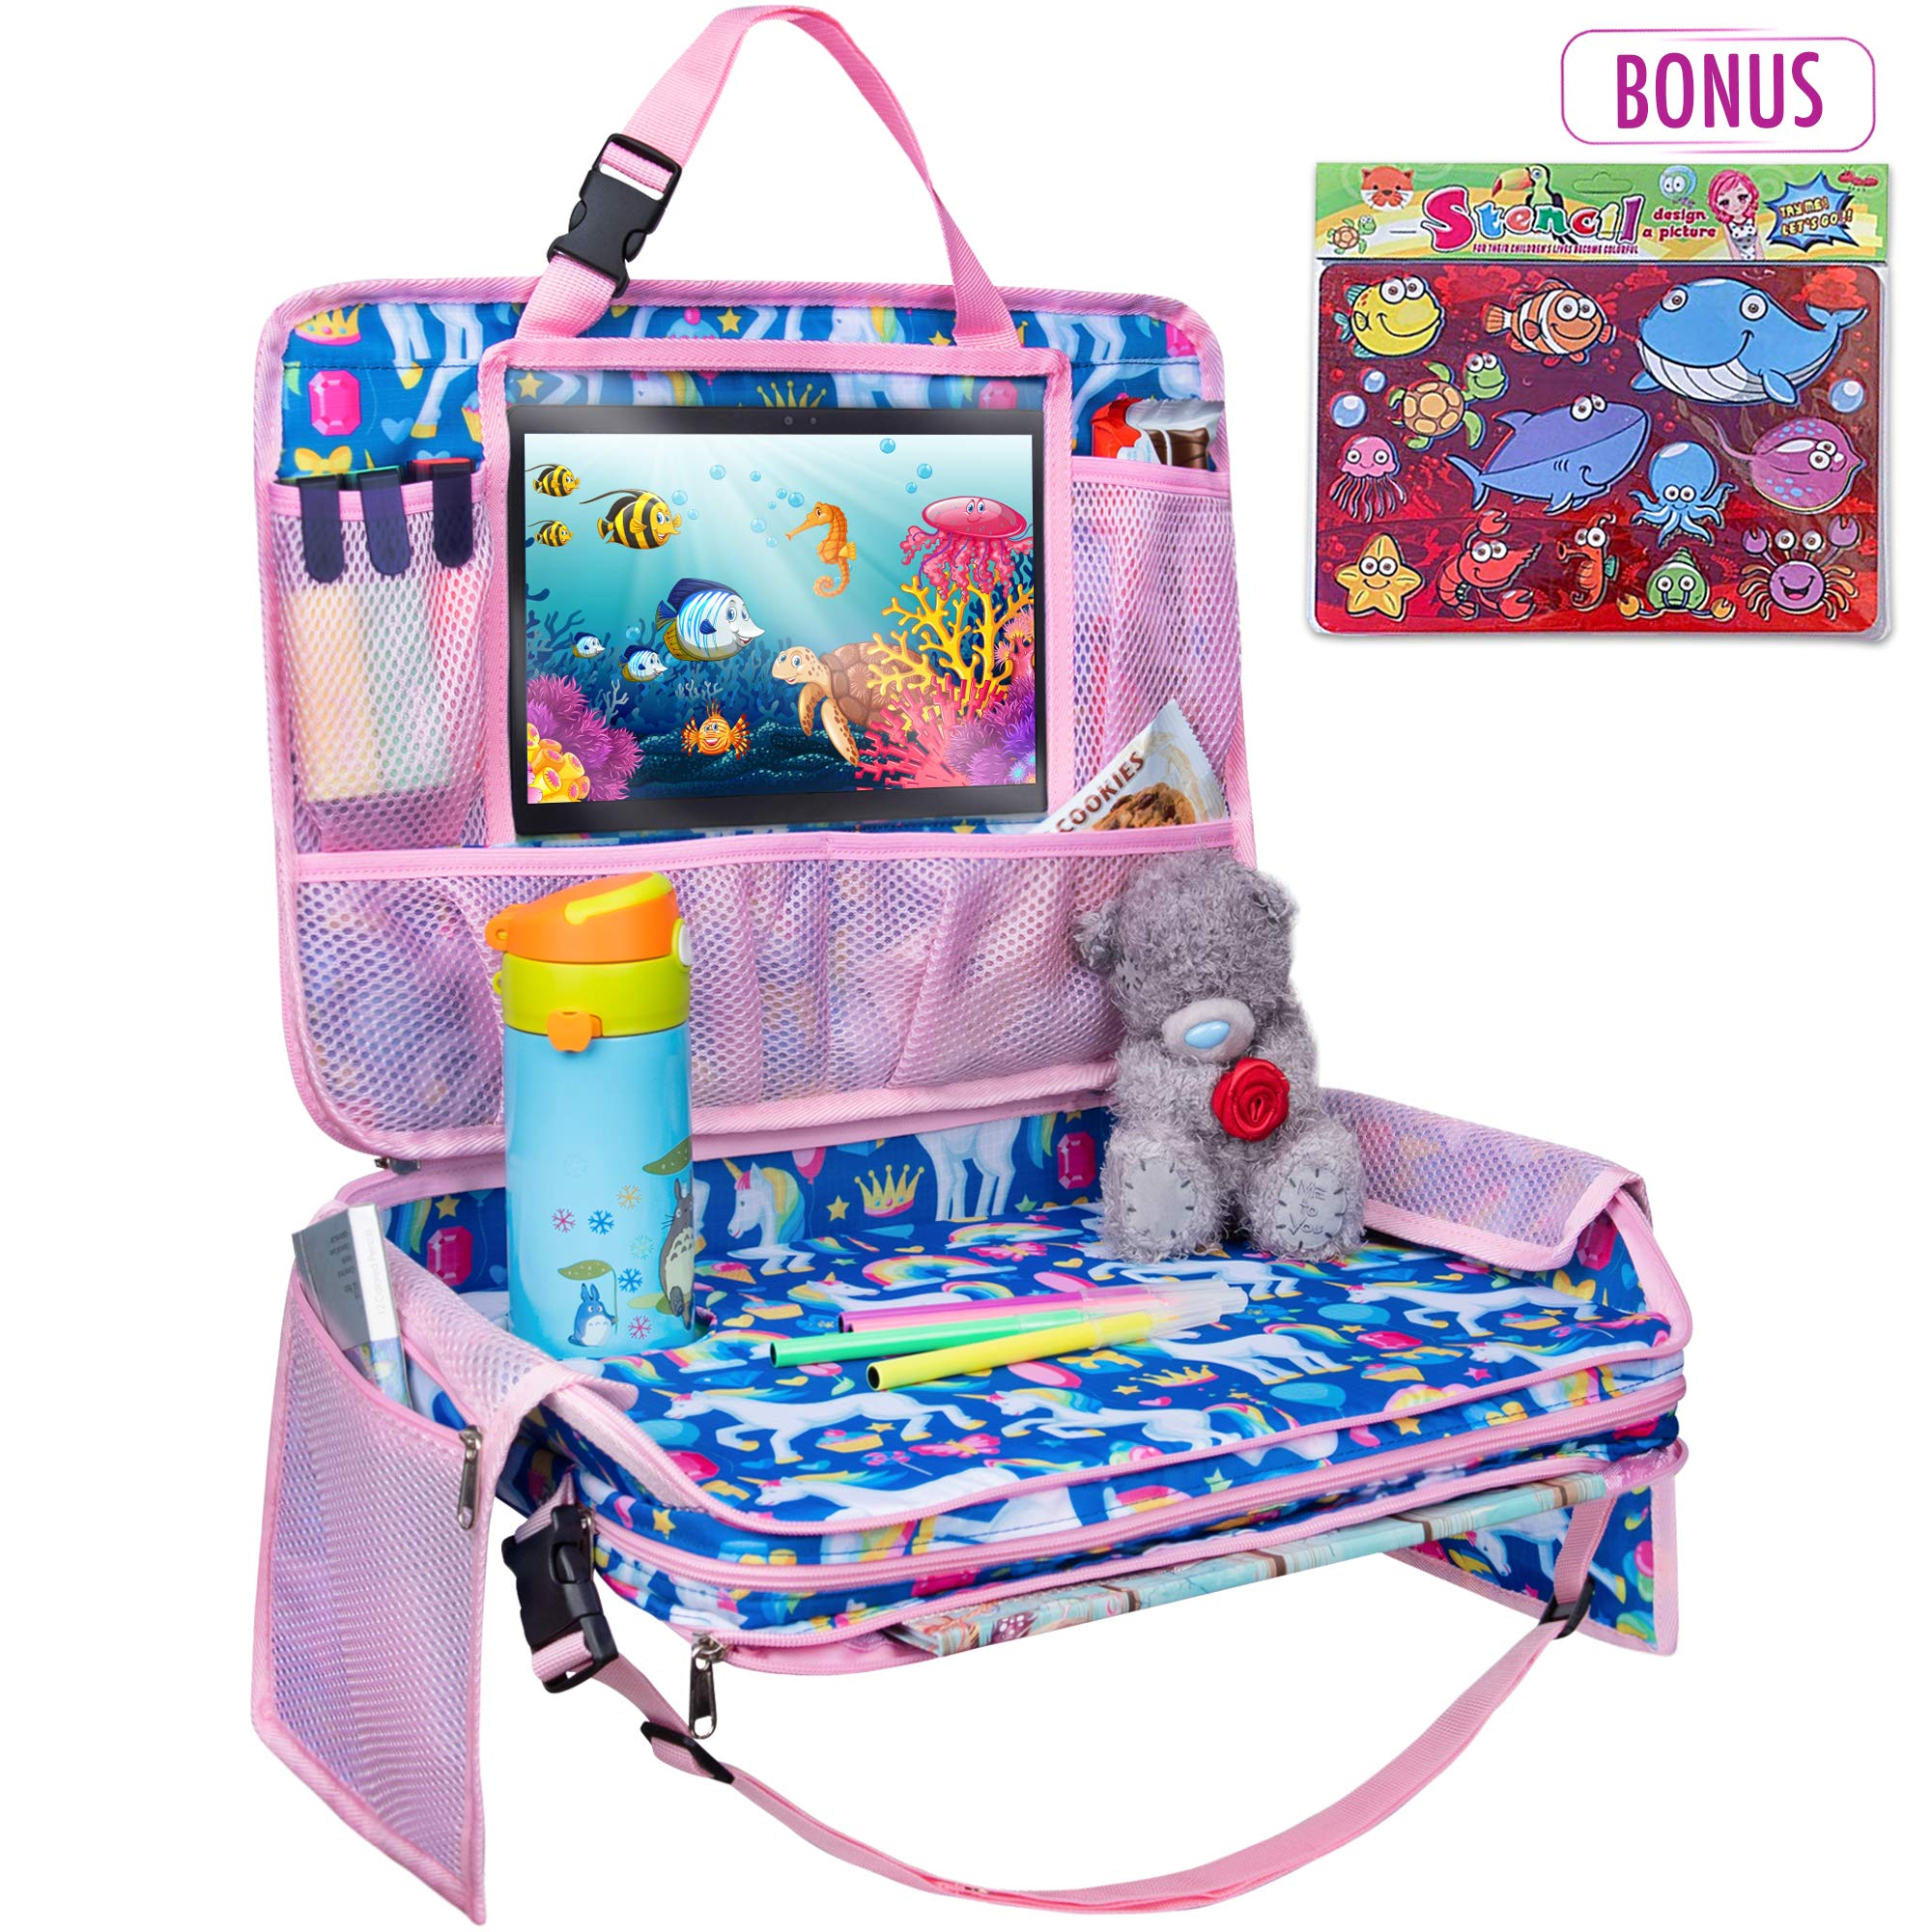 TravelMe Kids Travel Tray - Car Organizer Backseat Activity Station Snack Play Lap Tray with iPad Tablet Holder Detachable (Unicorn) by TravelMe